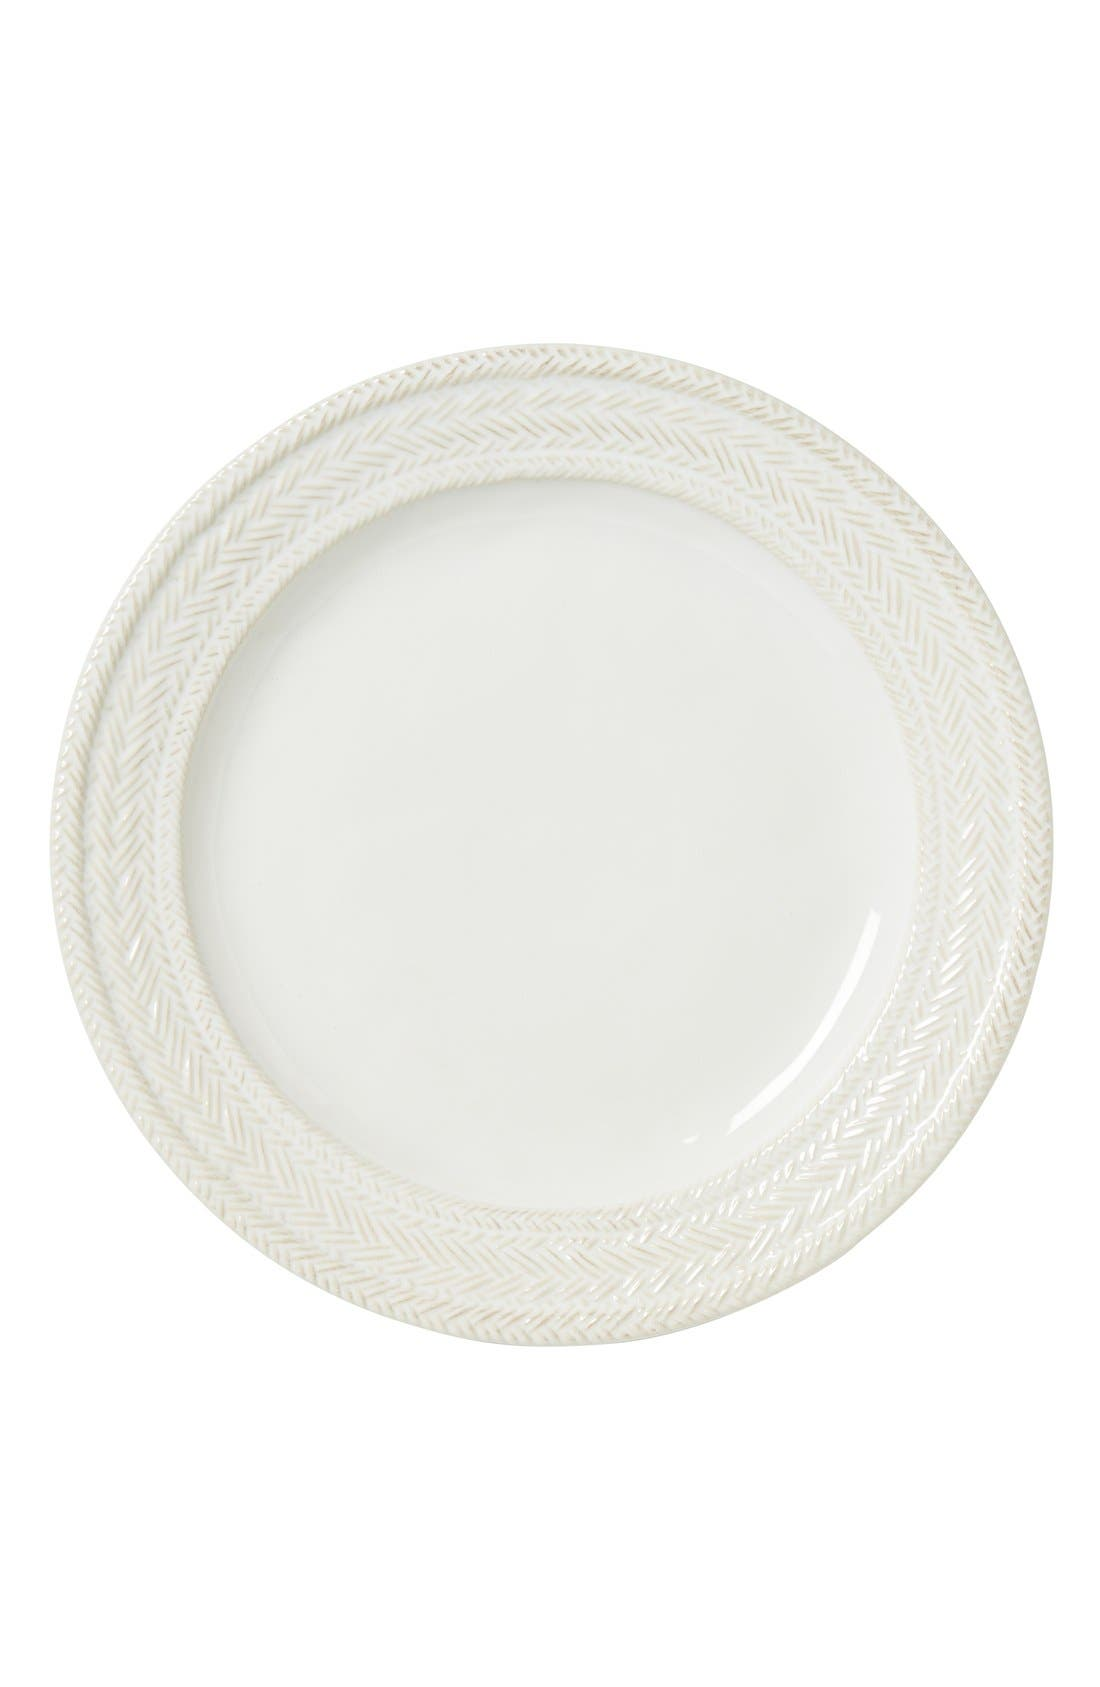 Le Panier Dinner Plate,                         Main,                         color, Whitewash